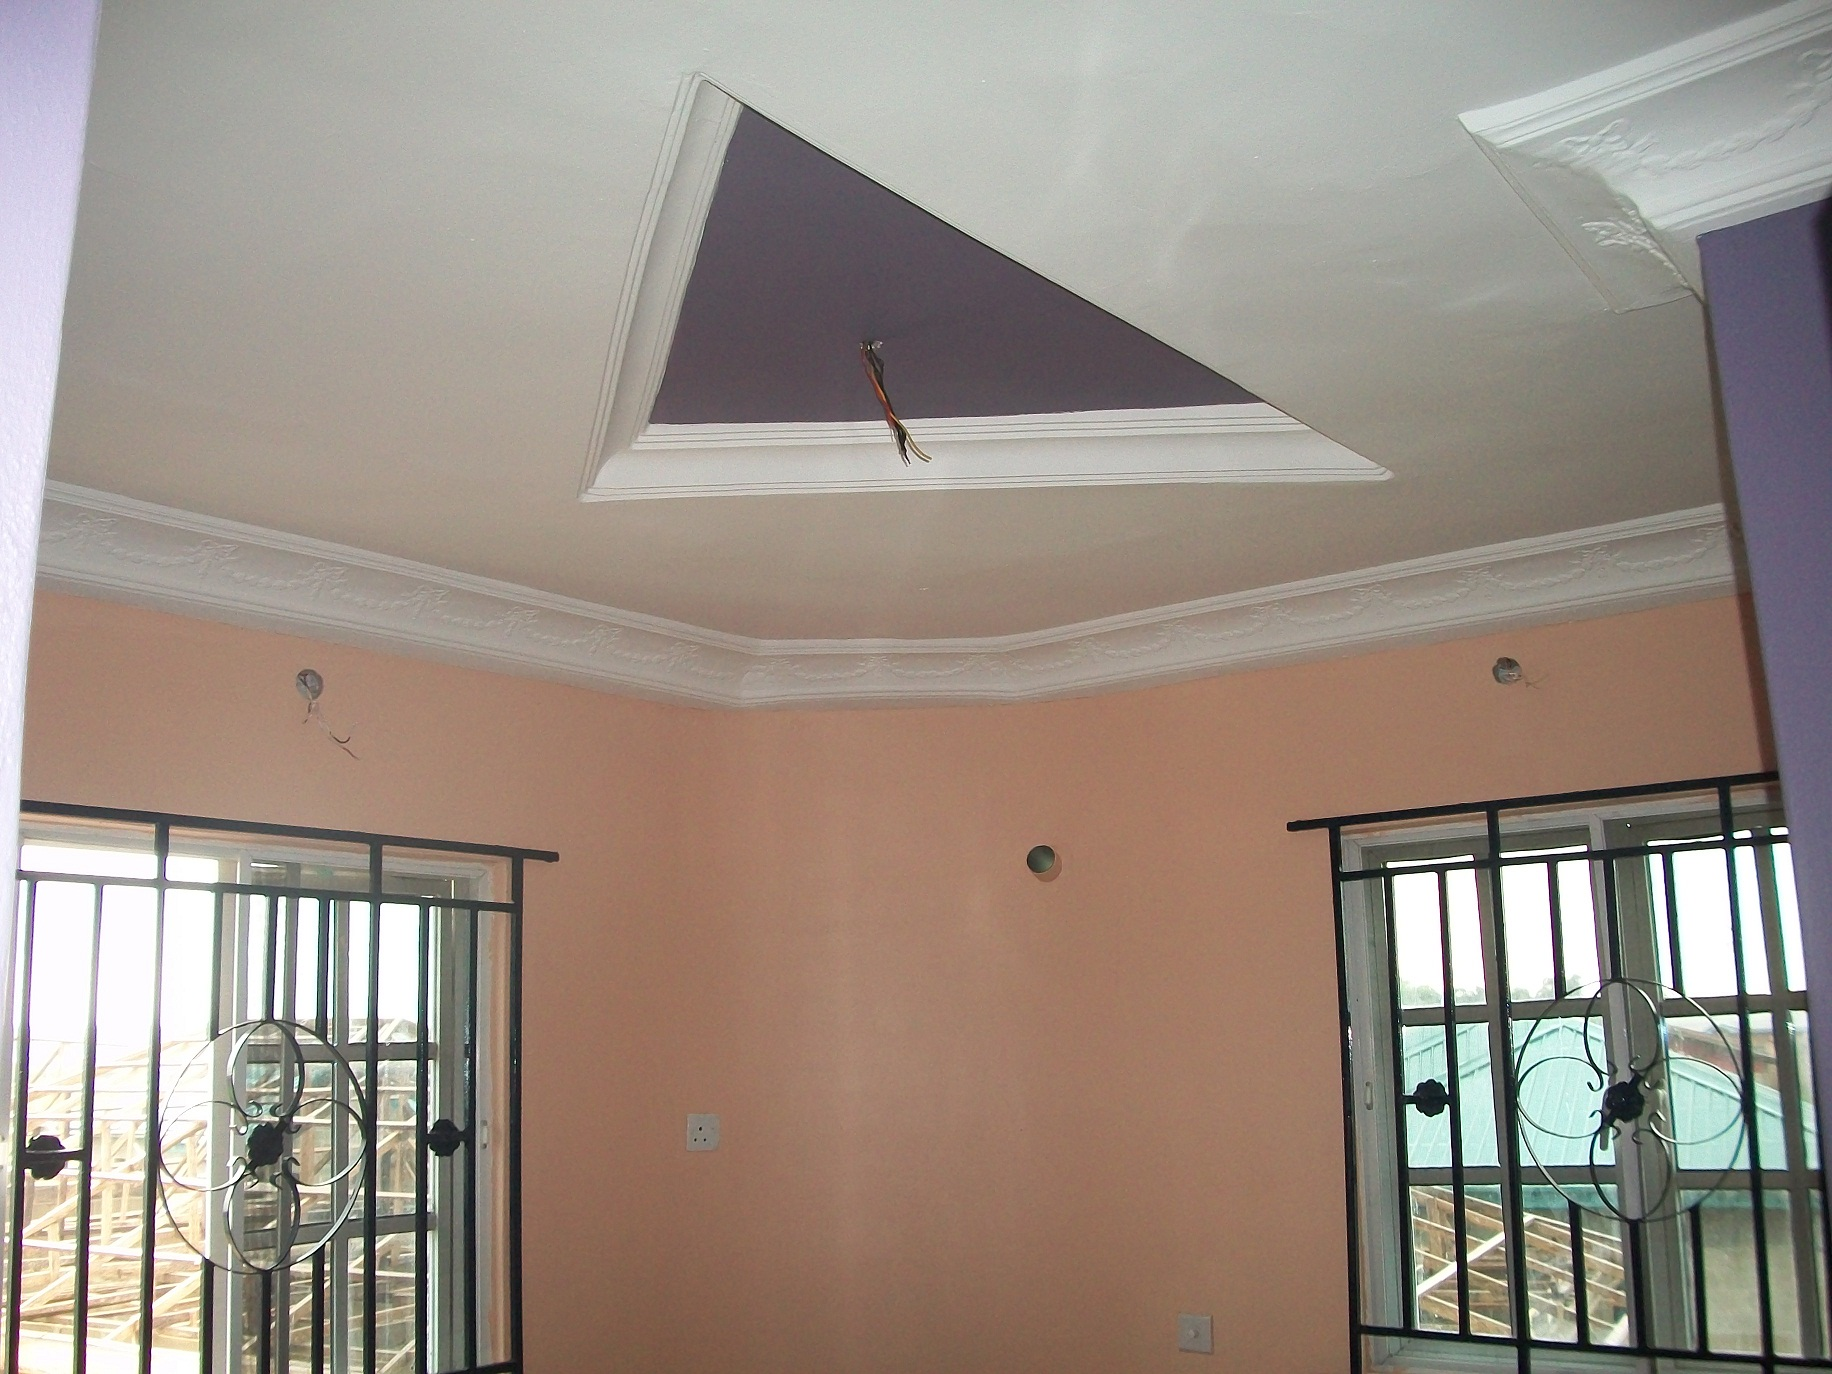 Liat decor nigeria limited is a blue chip company that does the following services but not limited to p o p ceiling suspended ceiling gypsum plaster